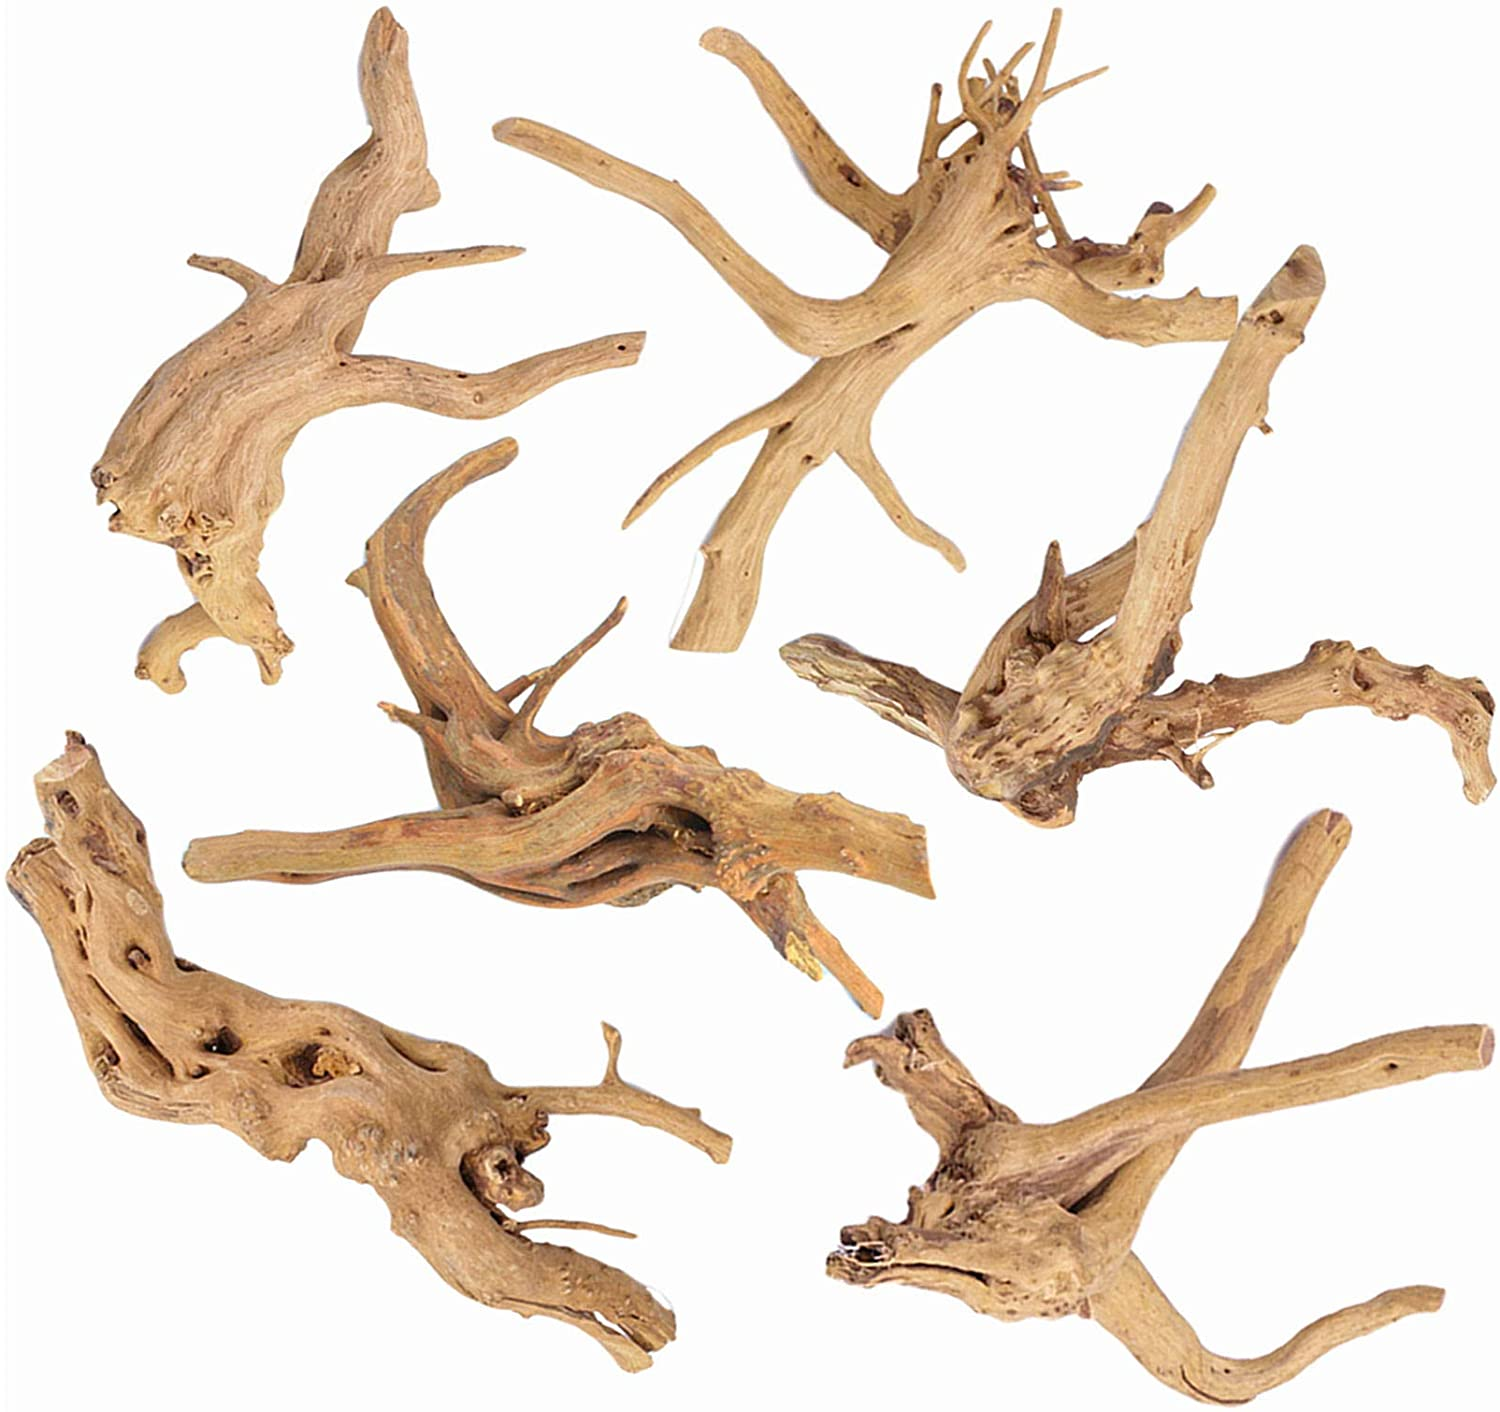 CHLORIS 6Pcs Aquarium Driftwood Spider Wood Ornament for Fish Tank Natural Branches Decorations (4in-6in)